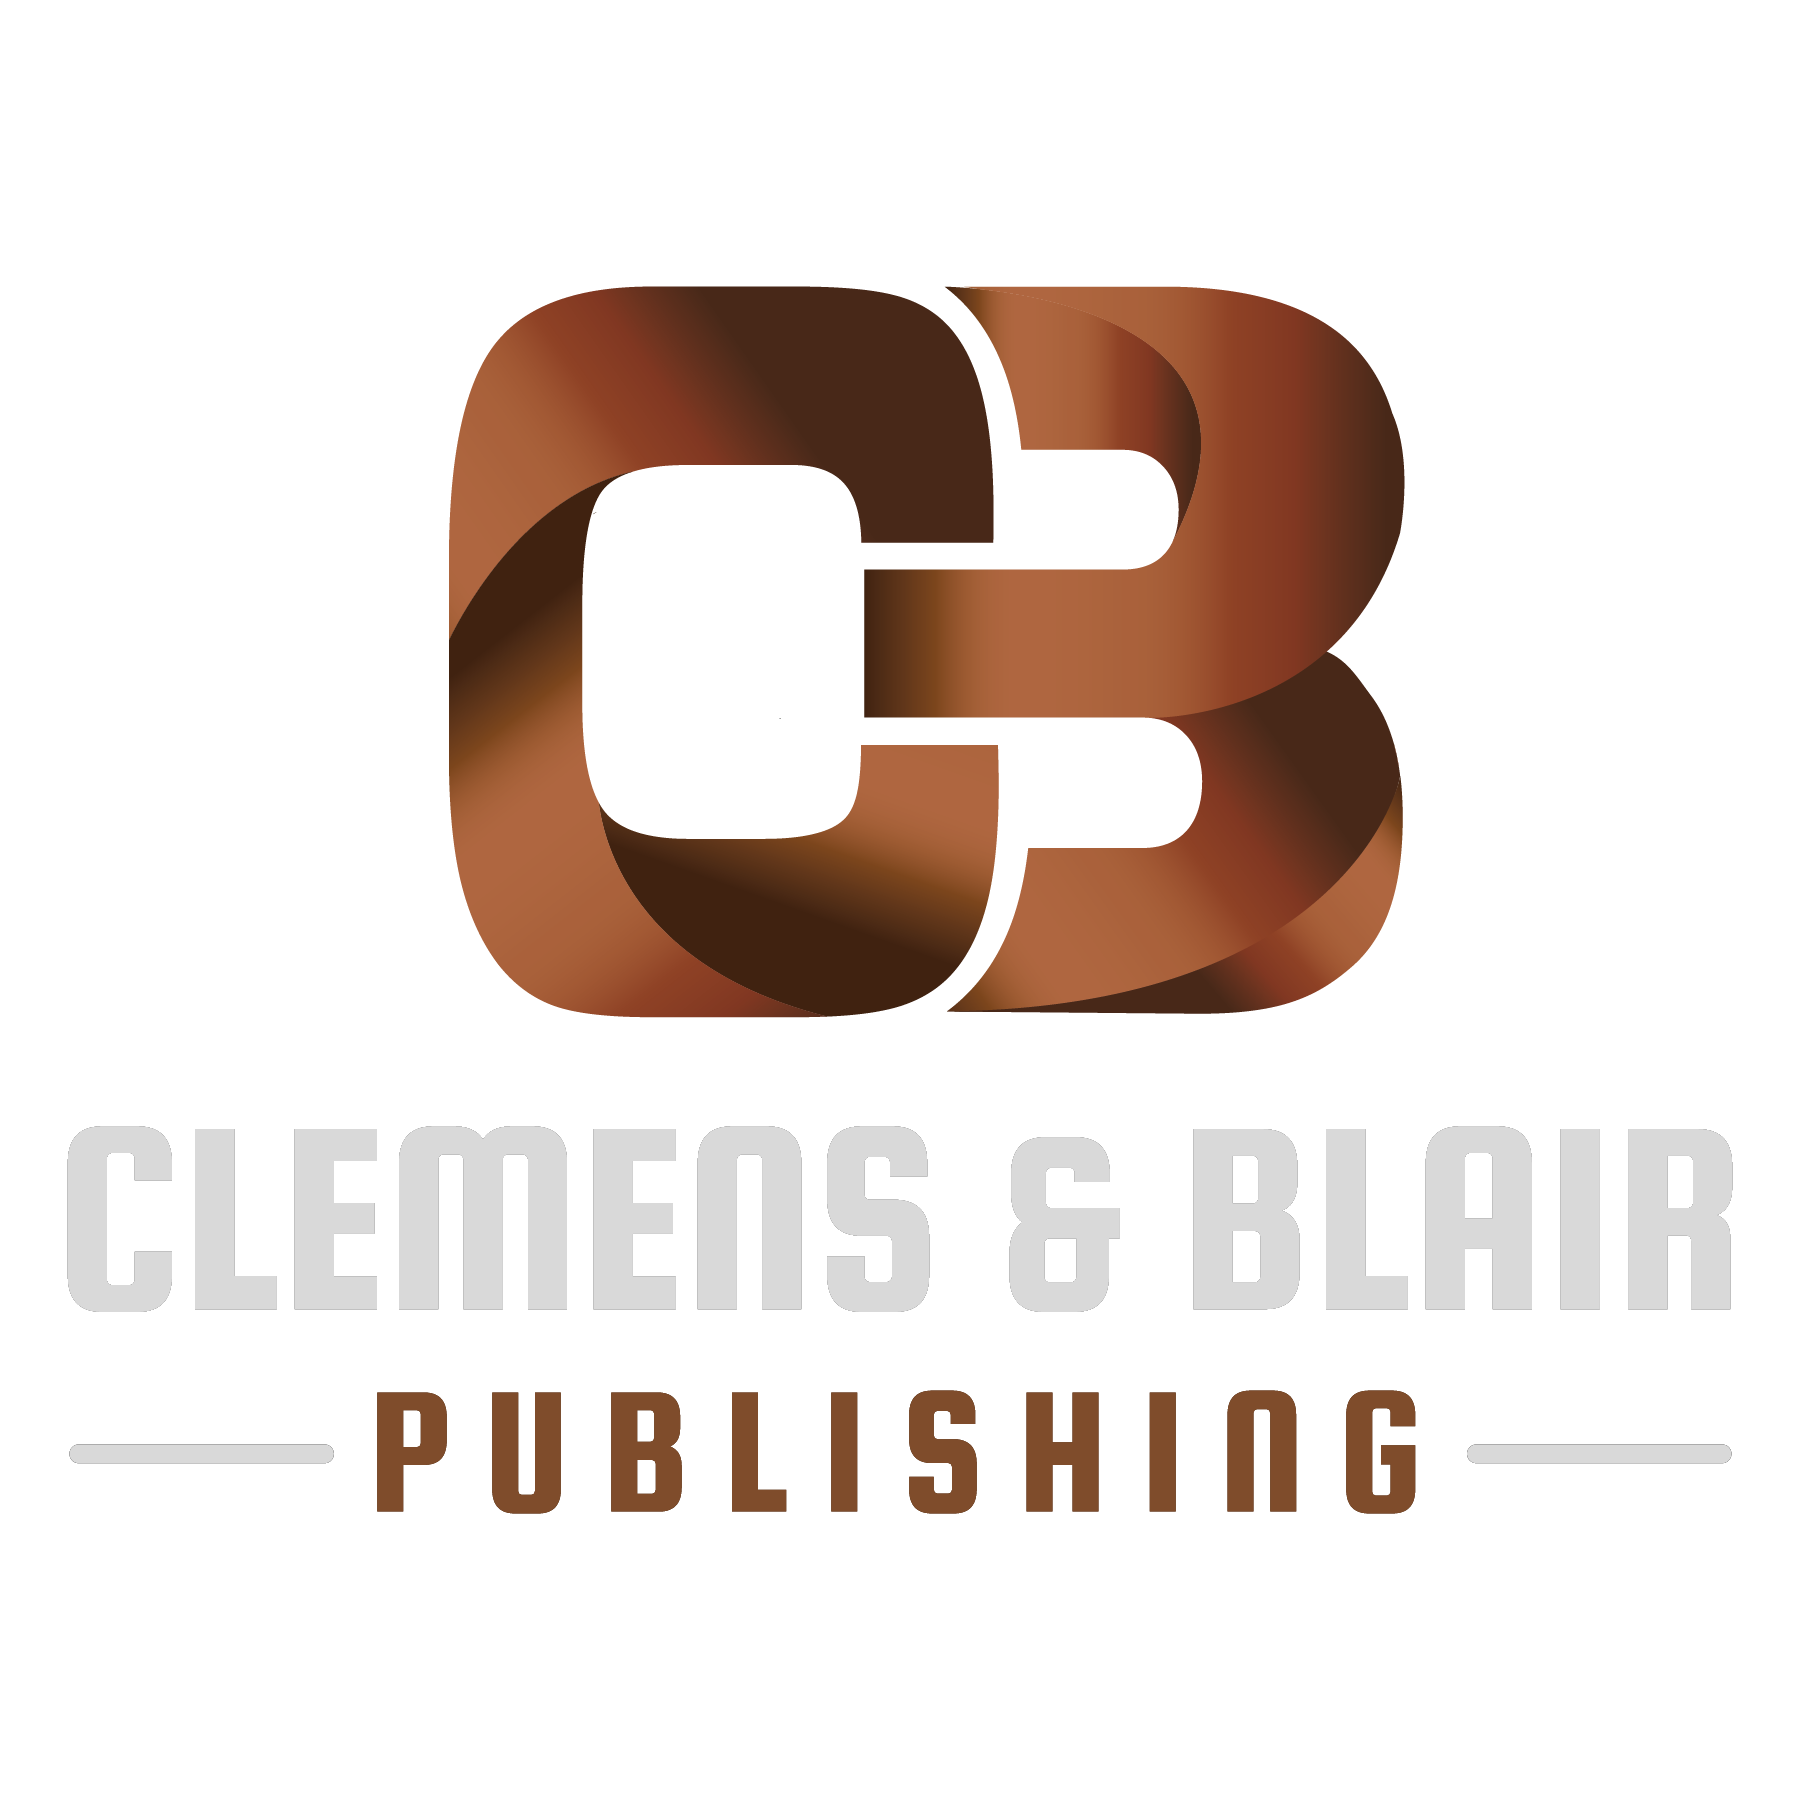 Clemens and Blair Publishing